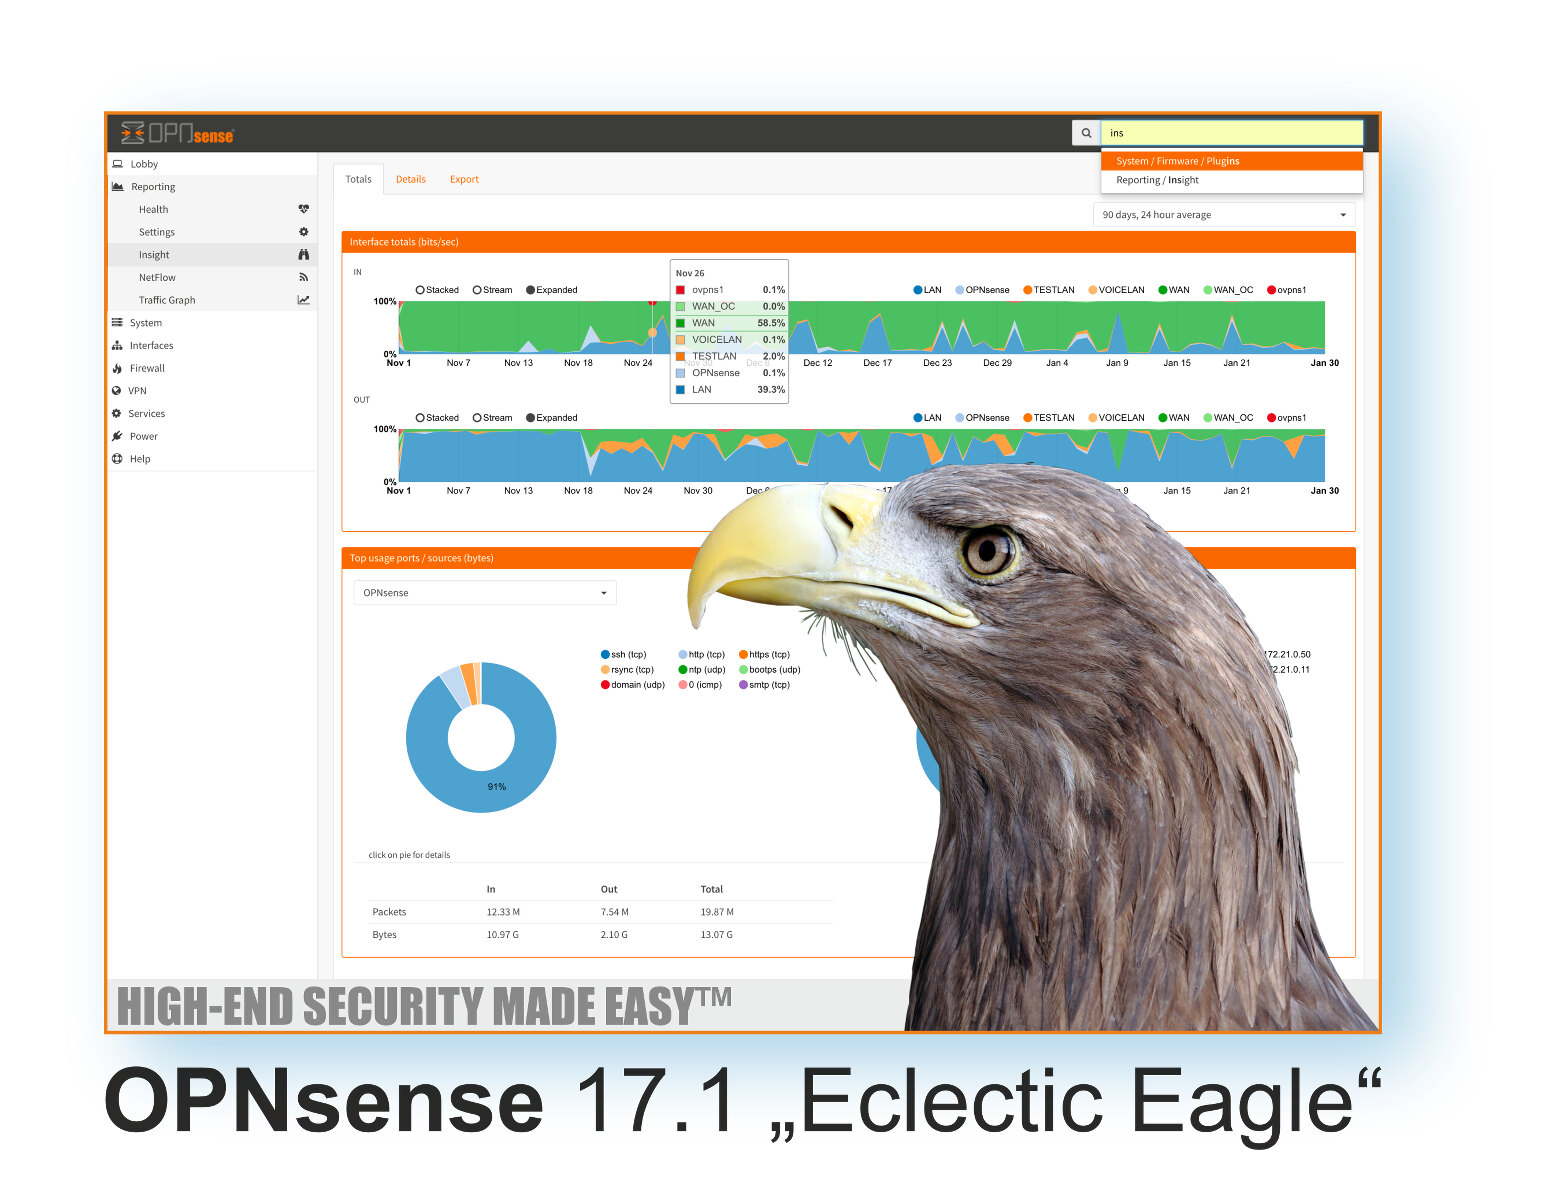 OPNsense Eclectic Eagle